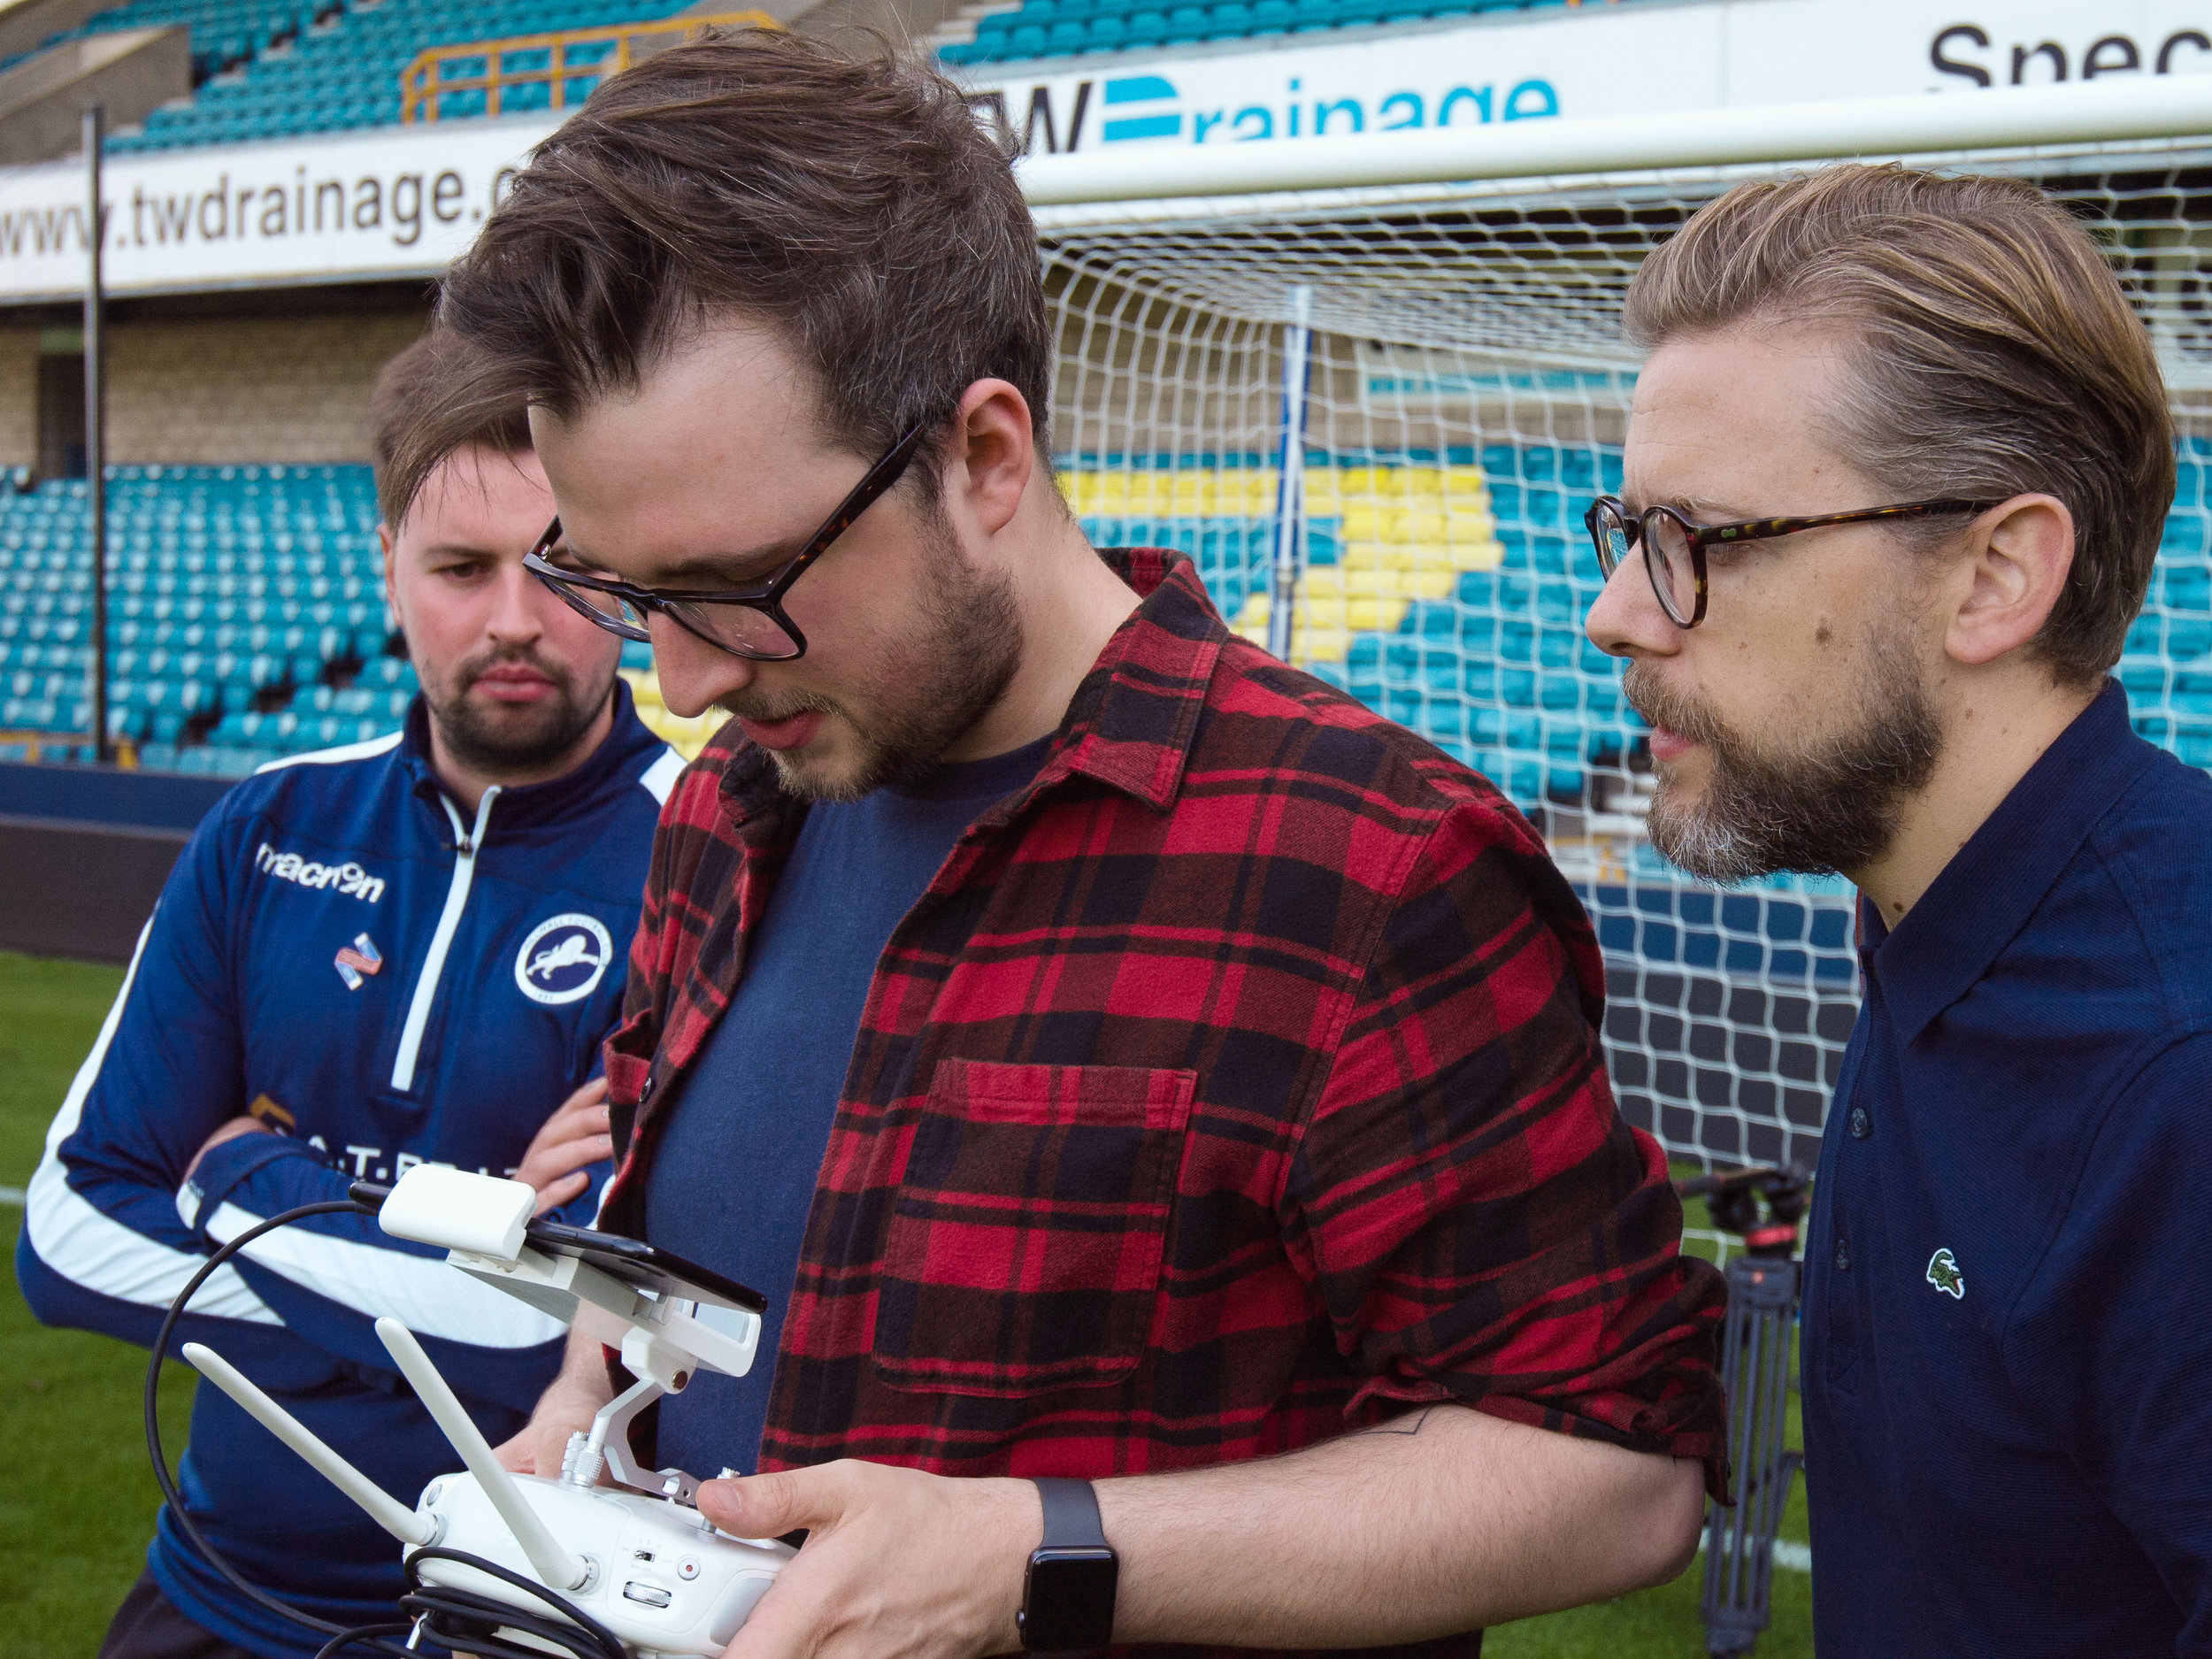 Grant Willis and Lewis Rees using the drone